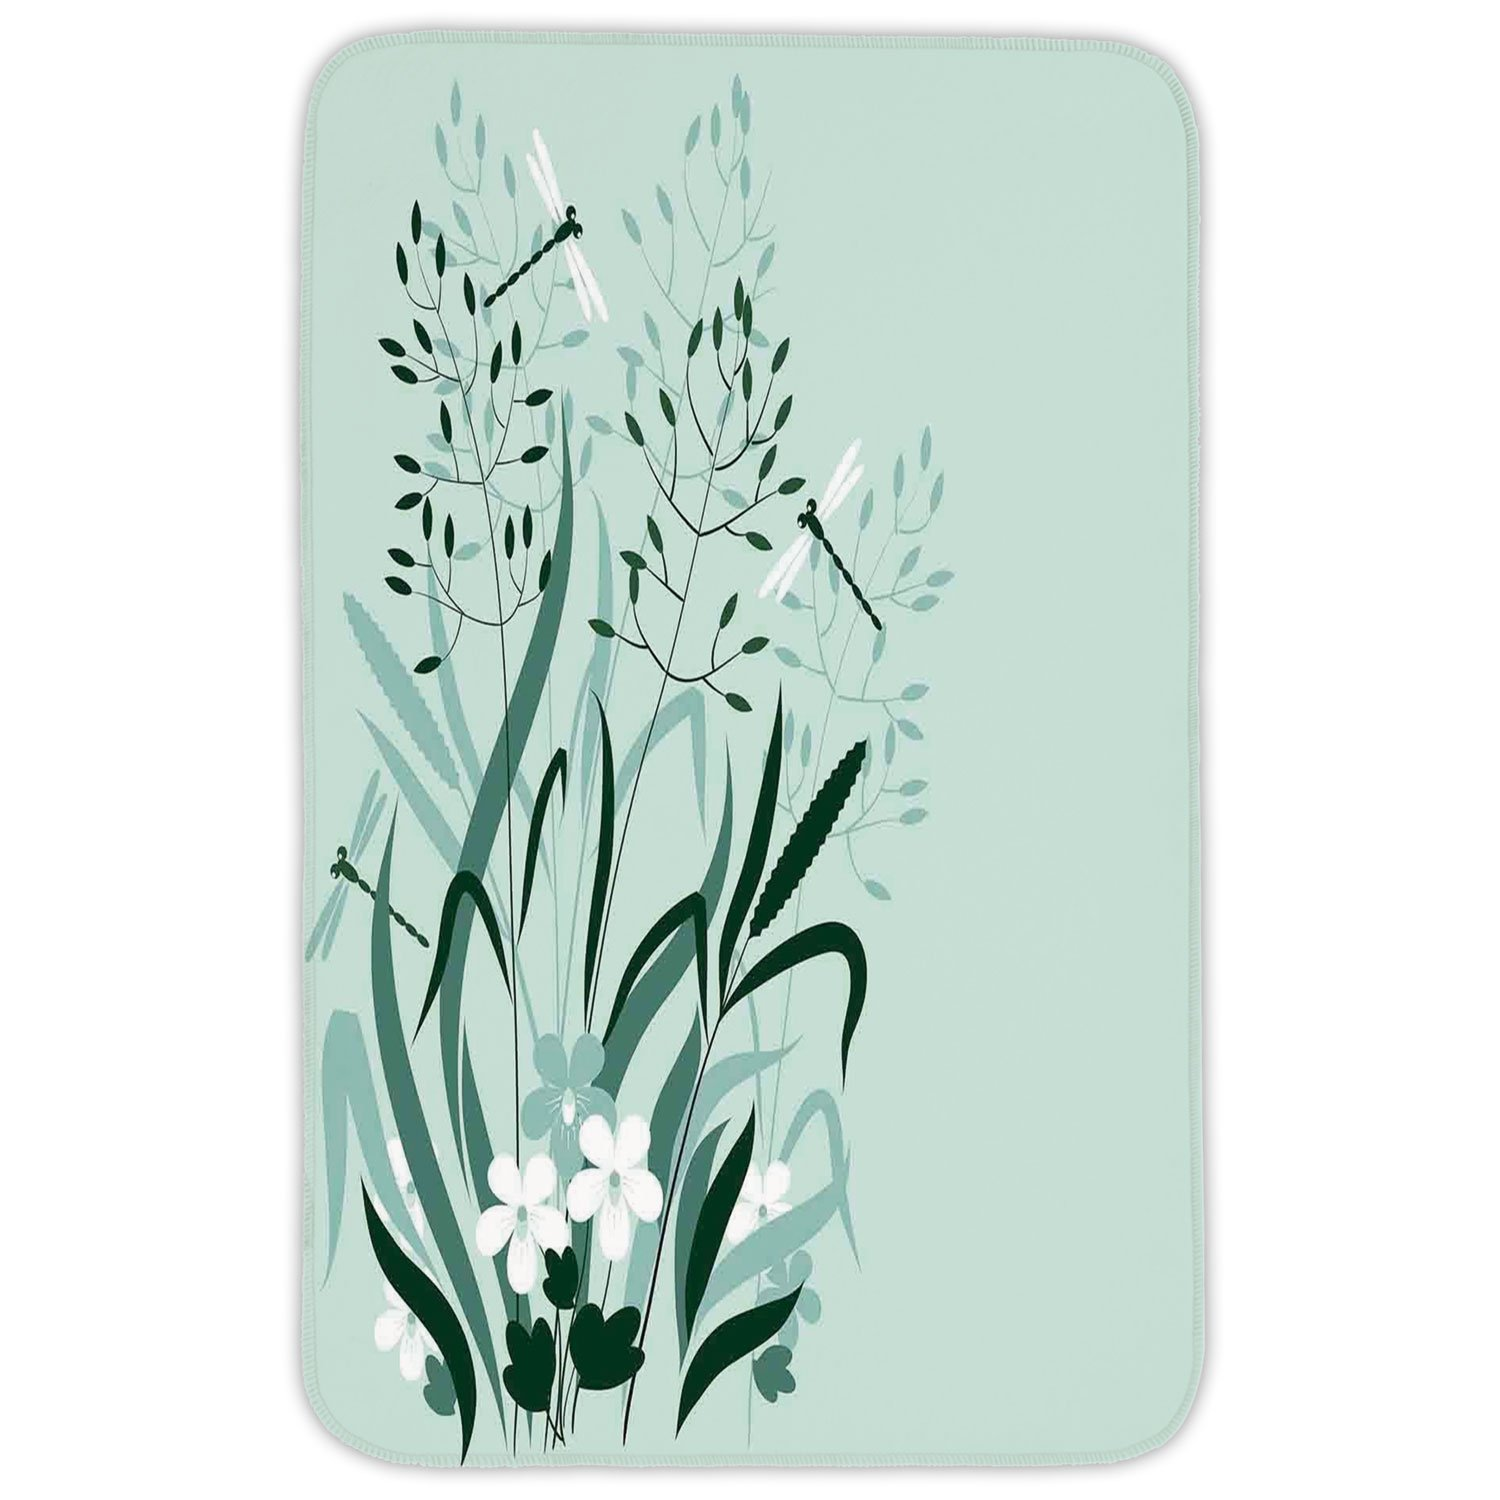 Rectangular Area Rug Mat Rug,Dragonfly,Wild Grass and Dragonflies in Exquisitely Growing Lawn Herb Bush Rural Pattern,Light Green,Home Decor Mat with Non Slip Backing